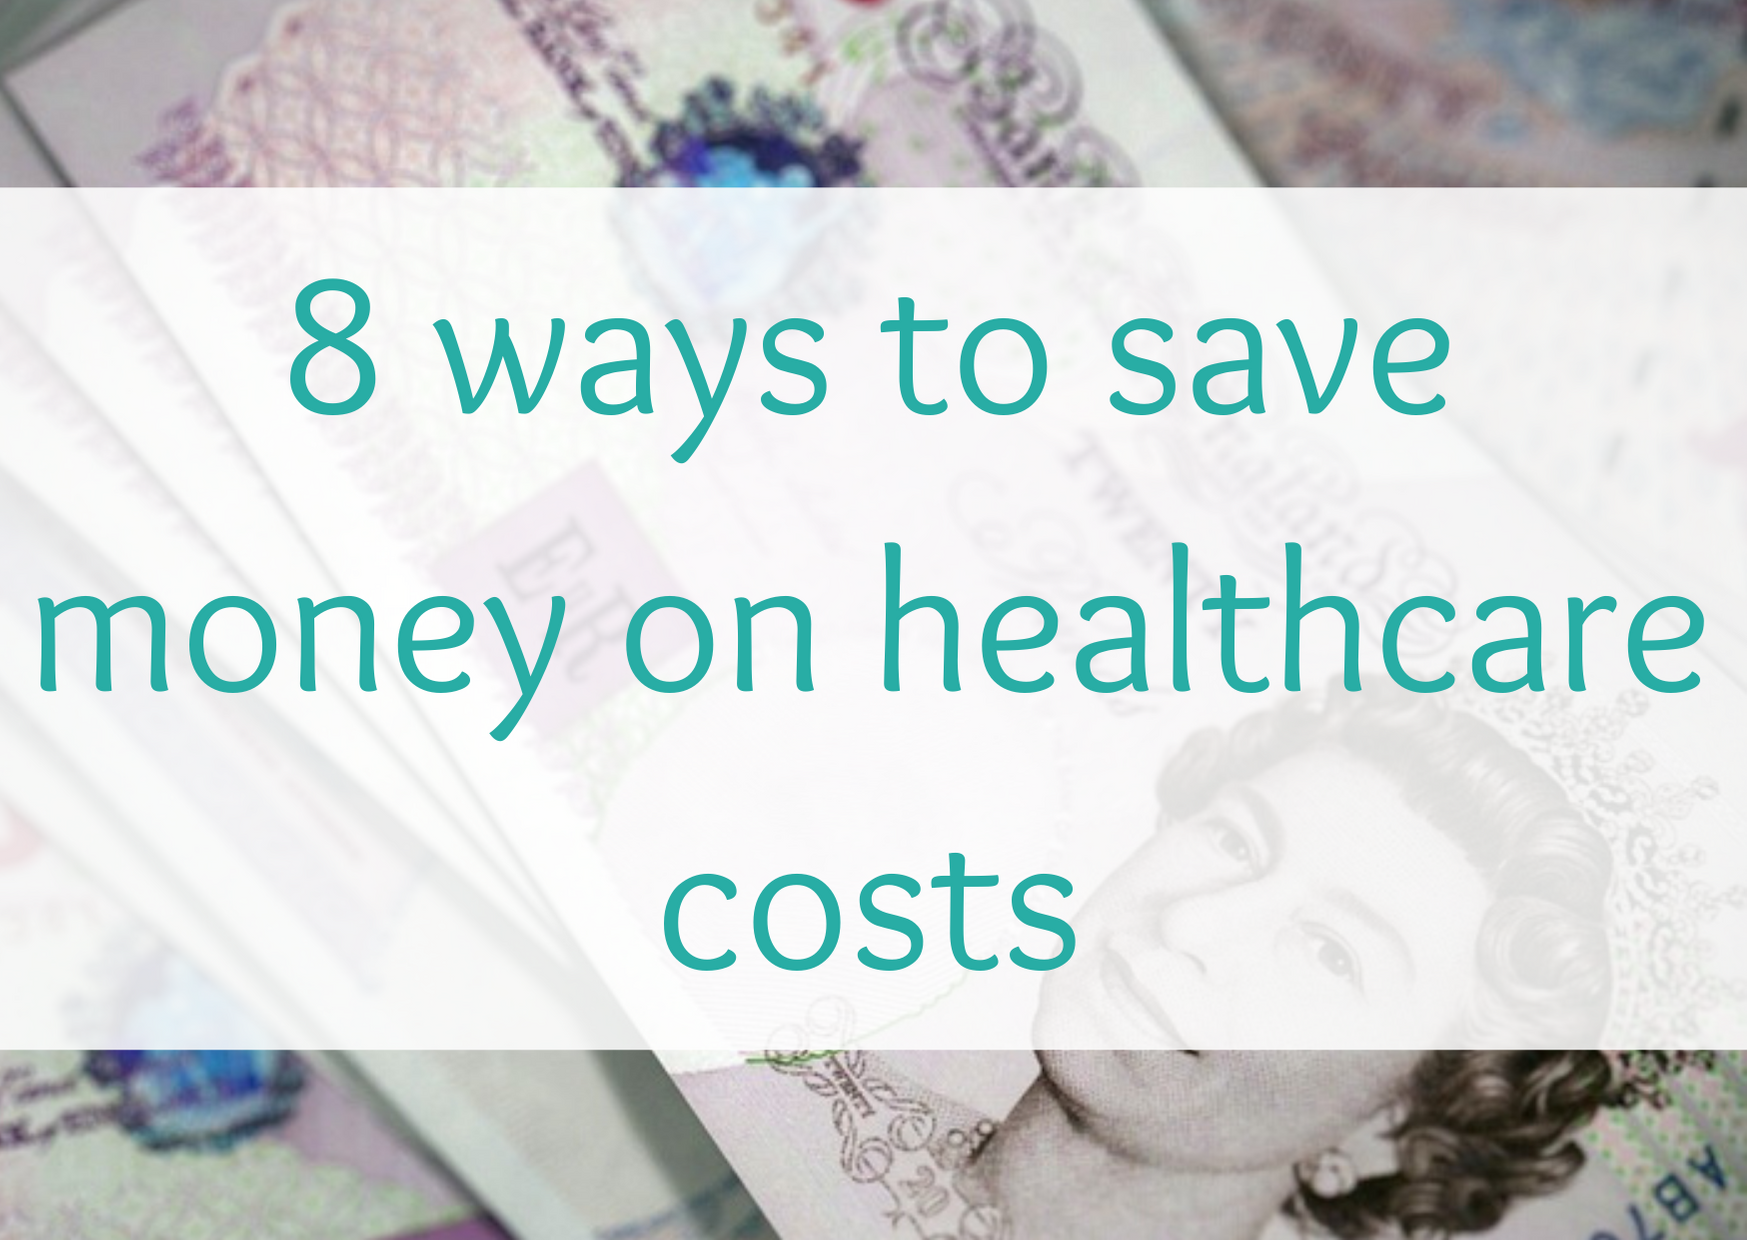 8 ways to save money on healthcare costs